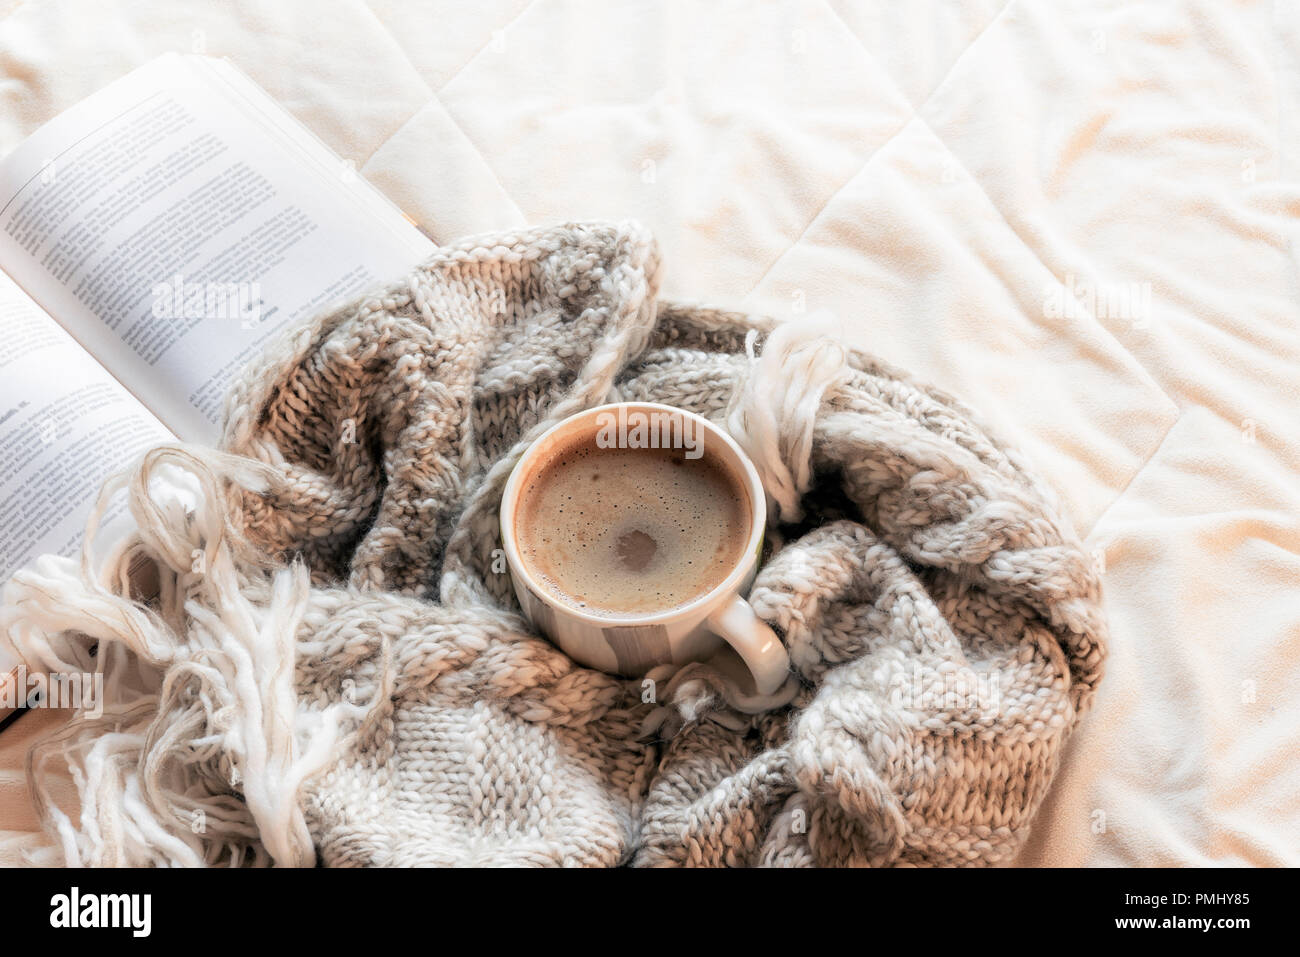 Fluffy shawl wrapped around a cup of hot chocolate, in front of an open book, on white sheets in a bright light, indoors. - Stock Image